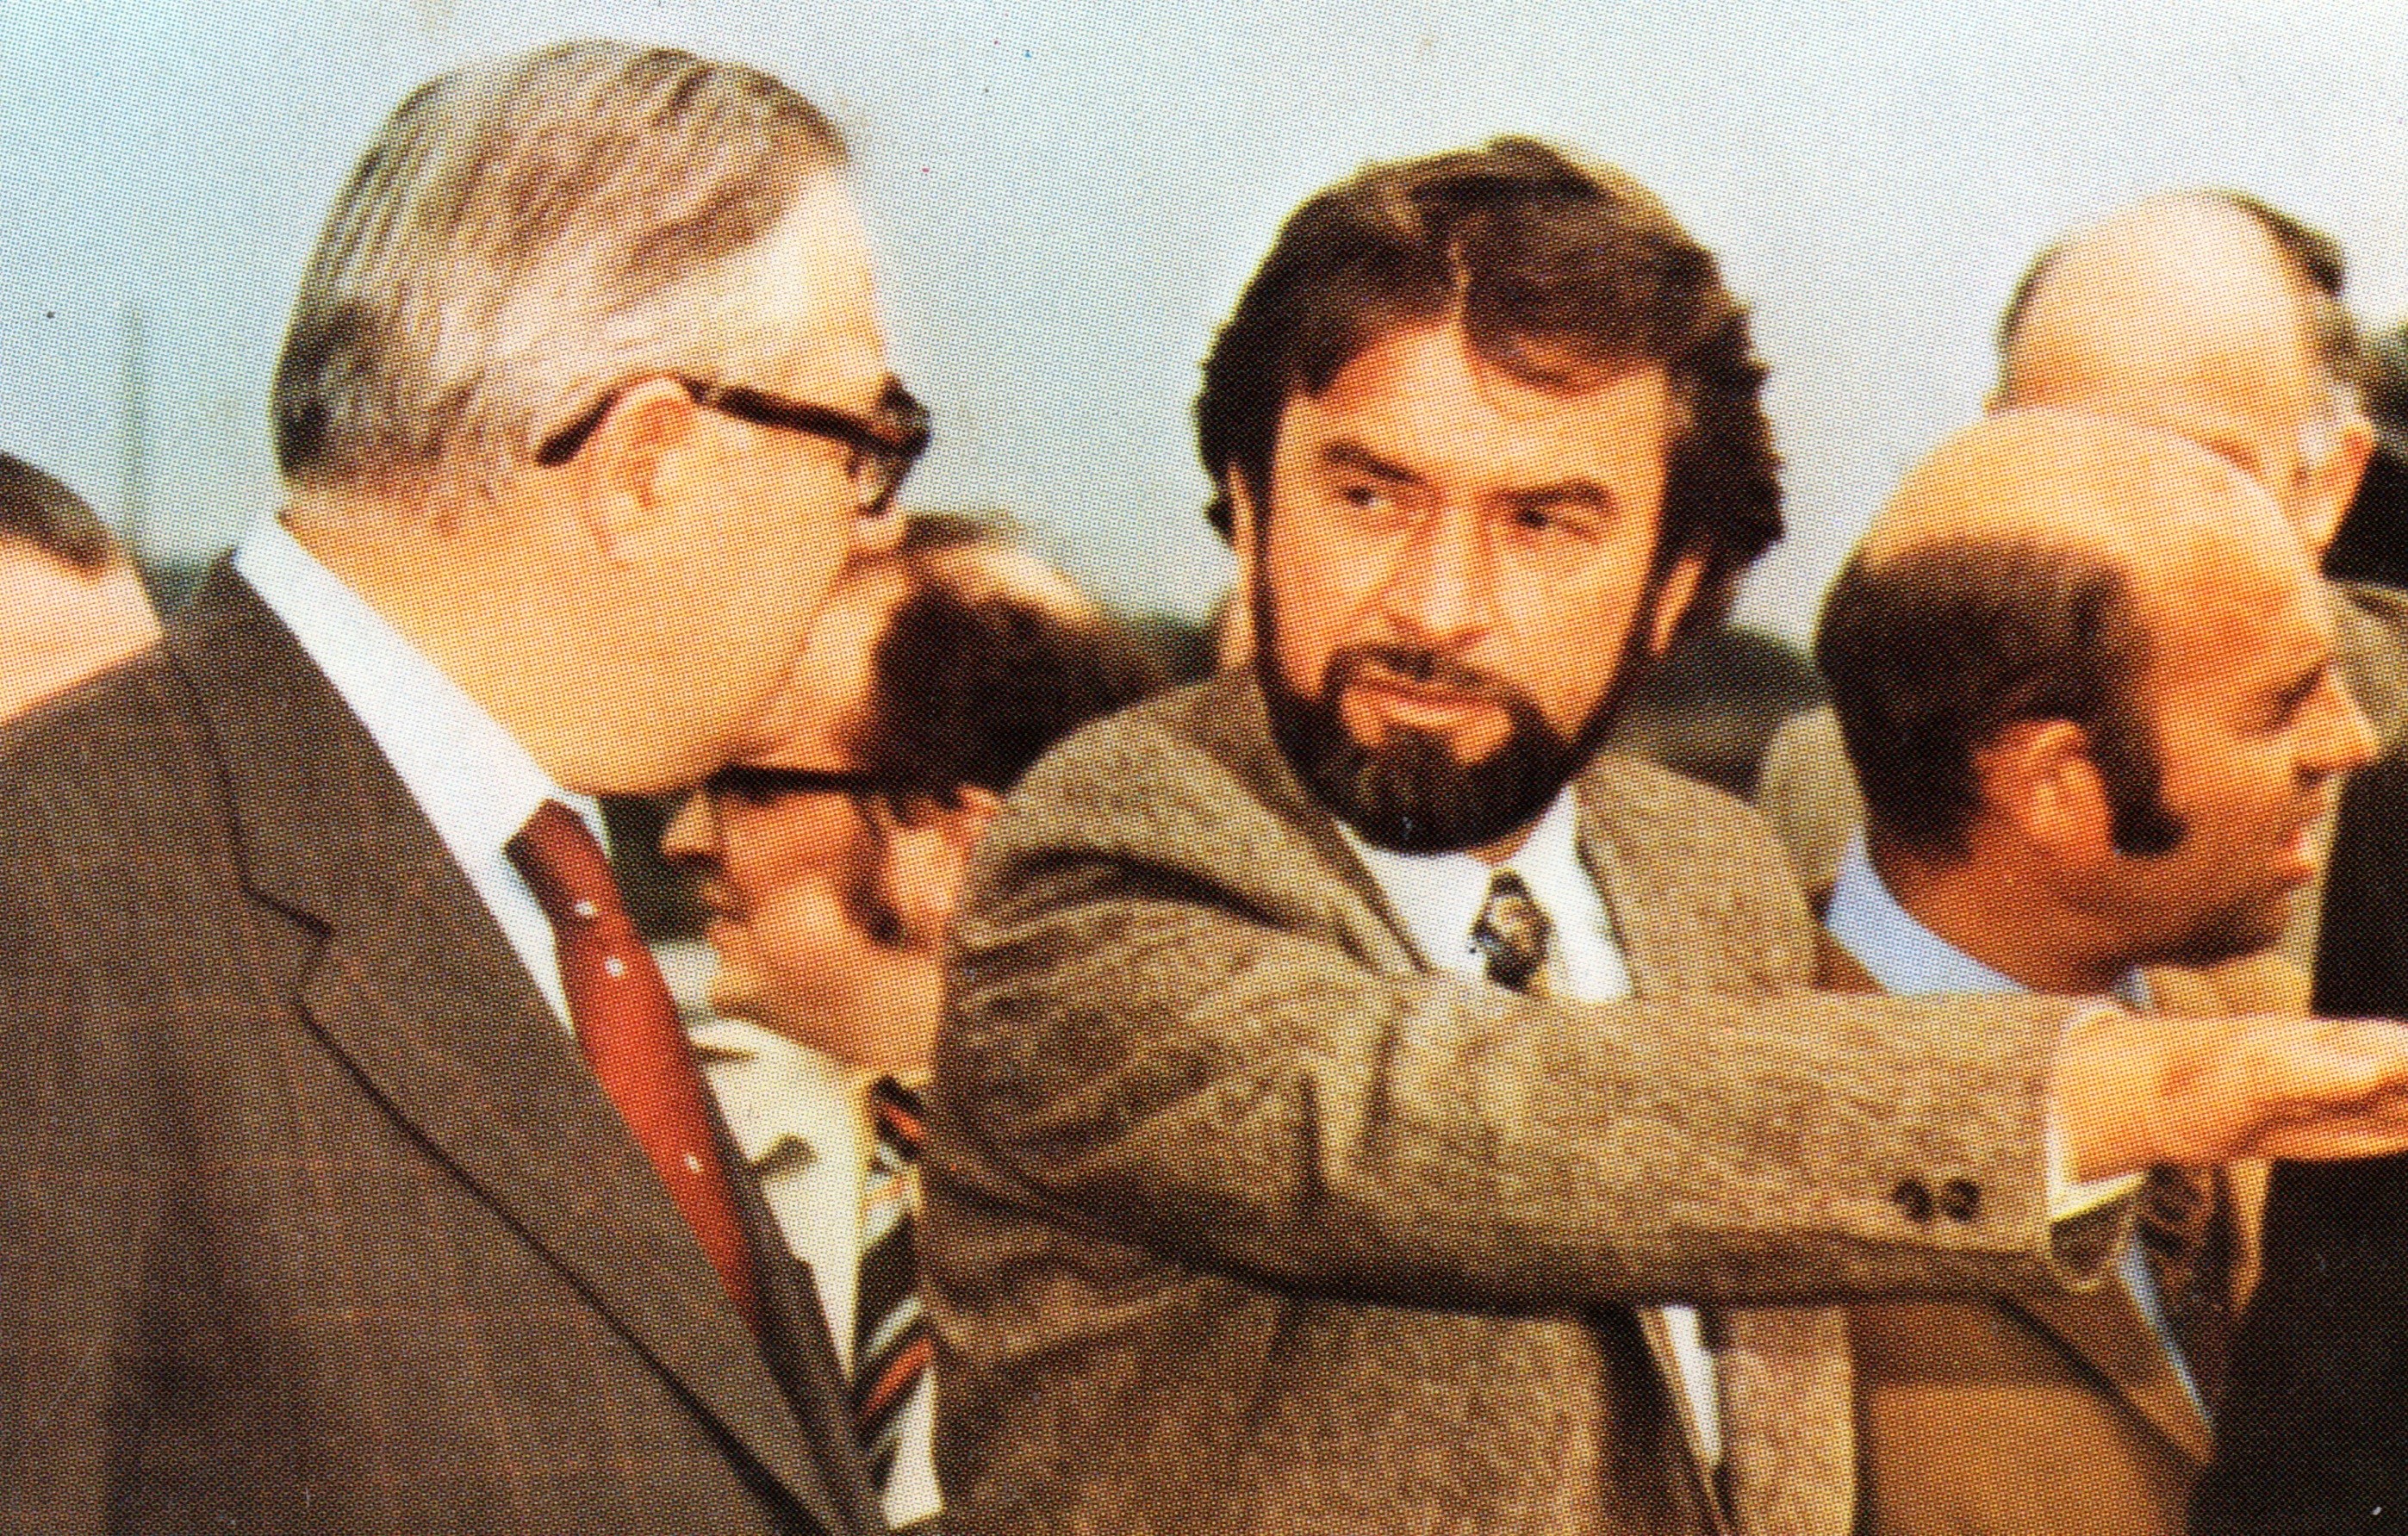 Howard Stevens with Prime Minister James Callaghan, 1970s